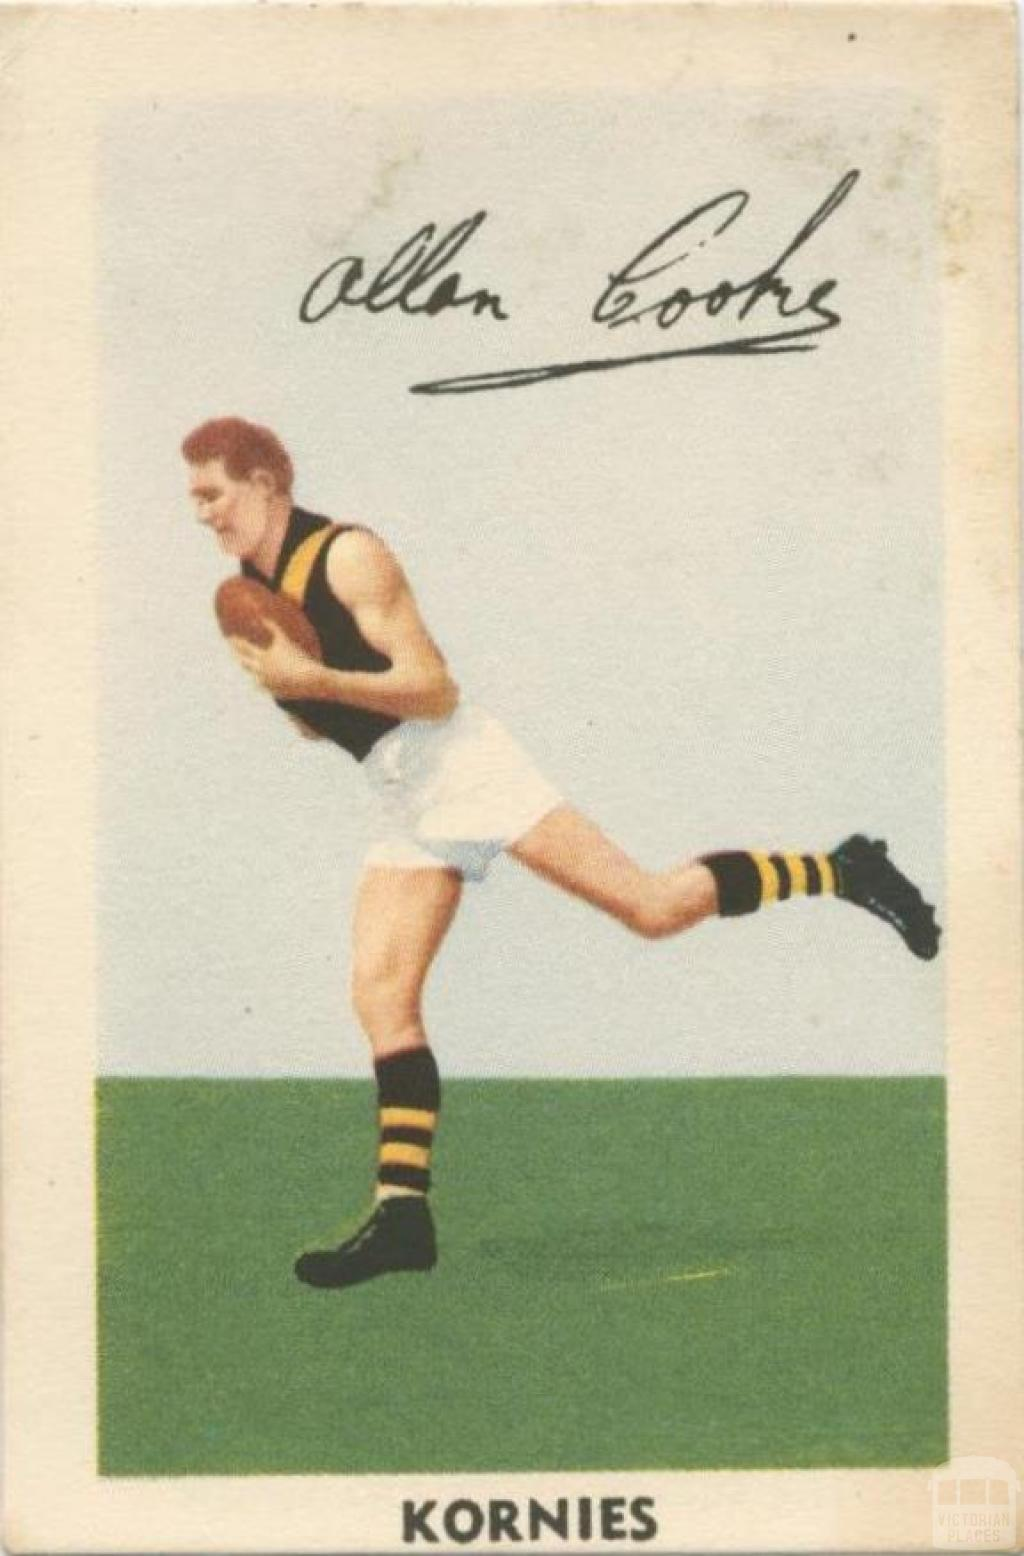 Allan Cooke, Richmond Football Club, Kornies Card